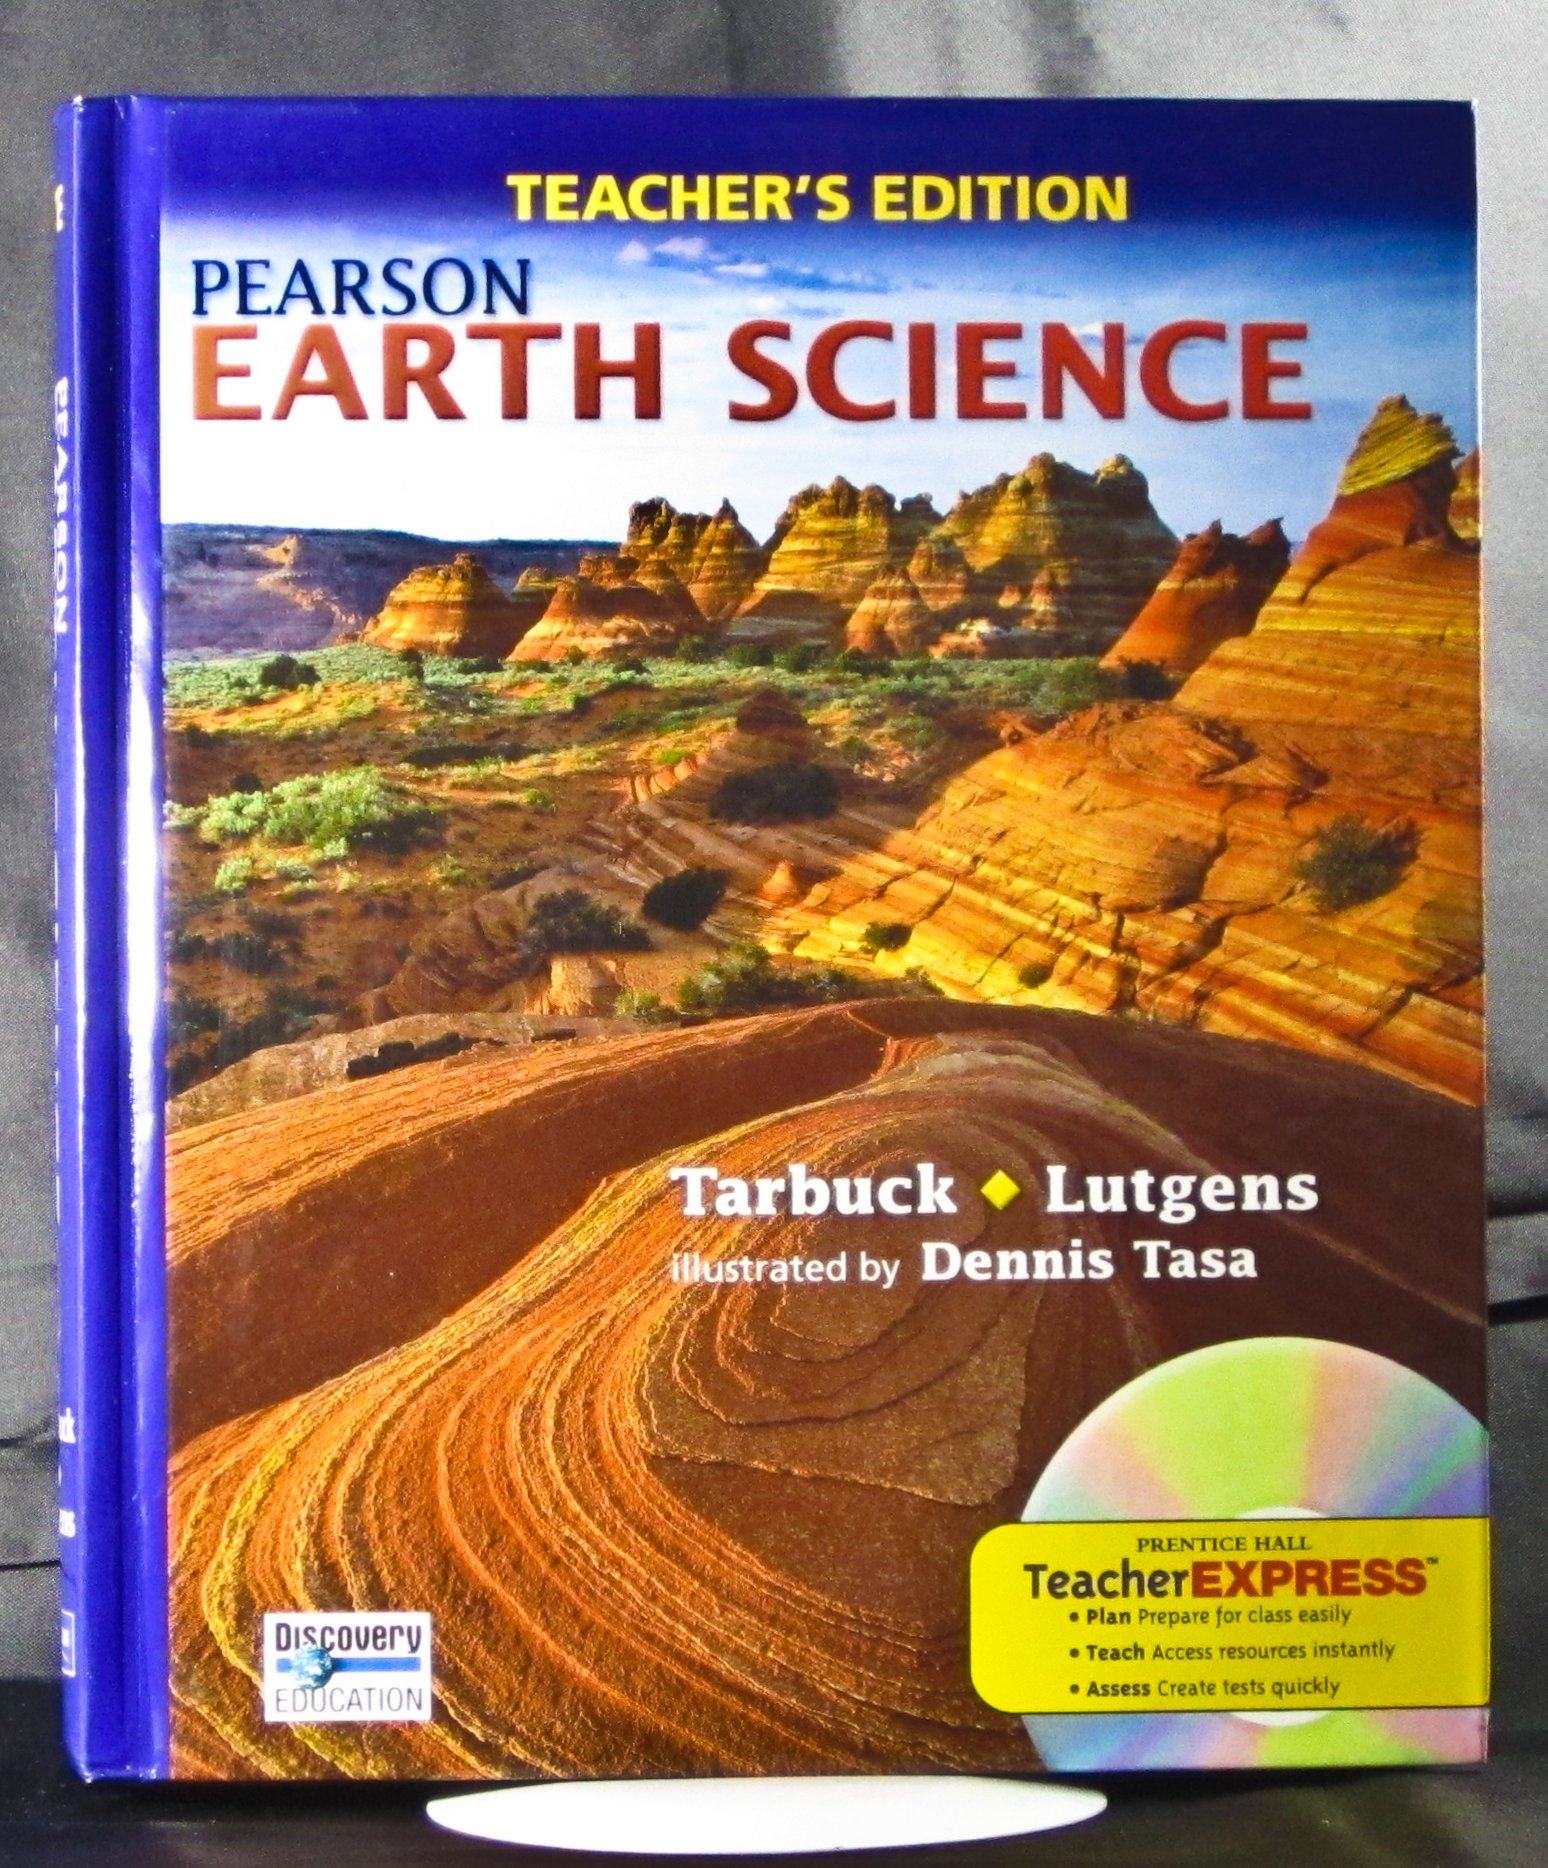 Pearson earth science teachers edition edward j and frederick k pearson earth science teachers edition edward j and frederick k lutgens tarbuck 0617215990448 amazon books fandeluxe Image collections